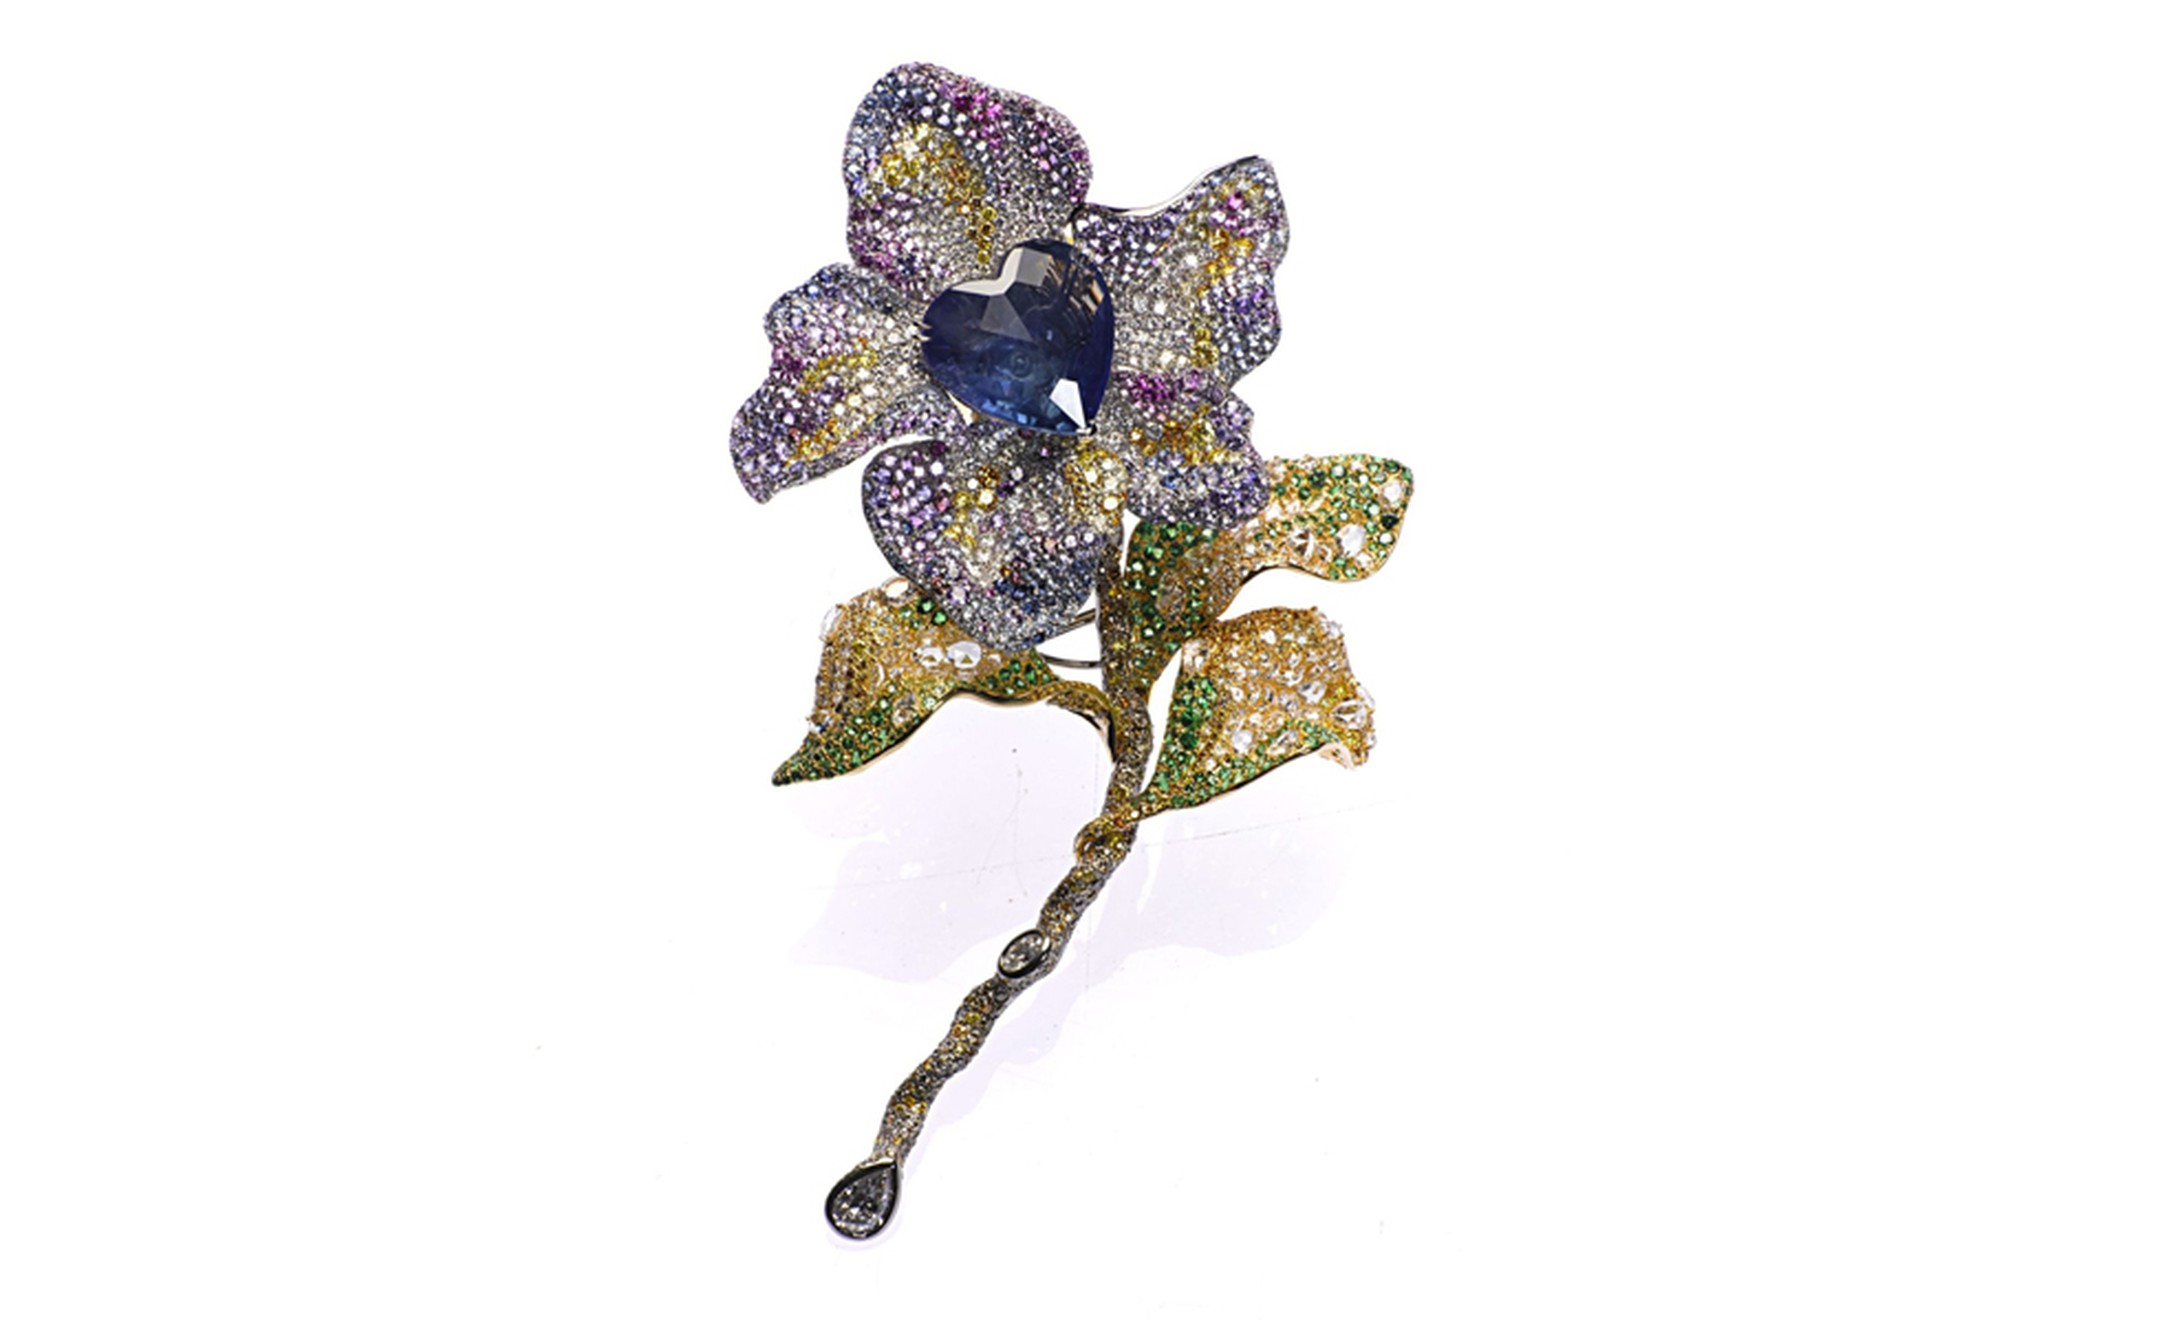 CINDY-CHAO-The-Art-Jewel-Black-Label-Masterpiece-Tipsy-Brooch_jpg--2160x0-q90-crop-scale-subsampling-2-upscale-false